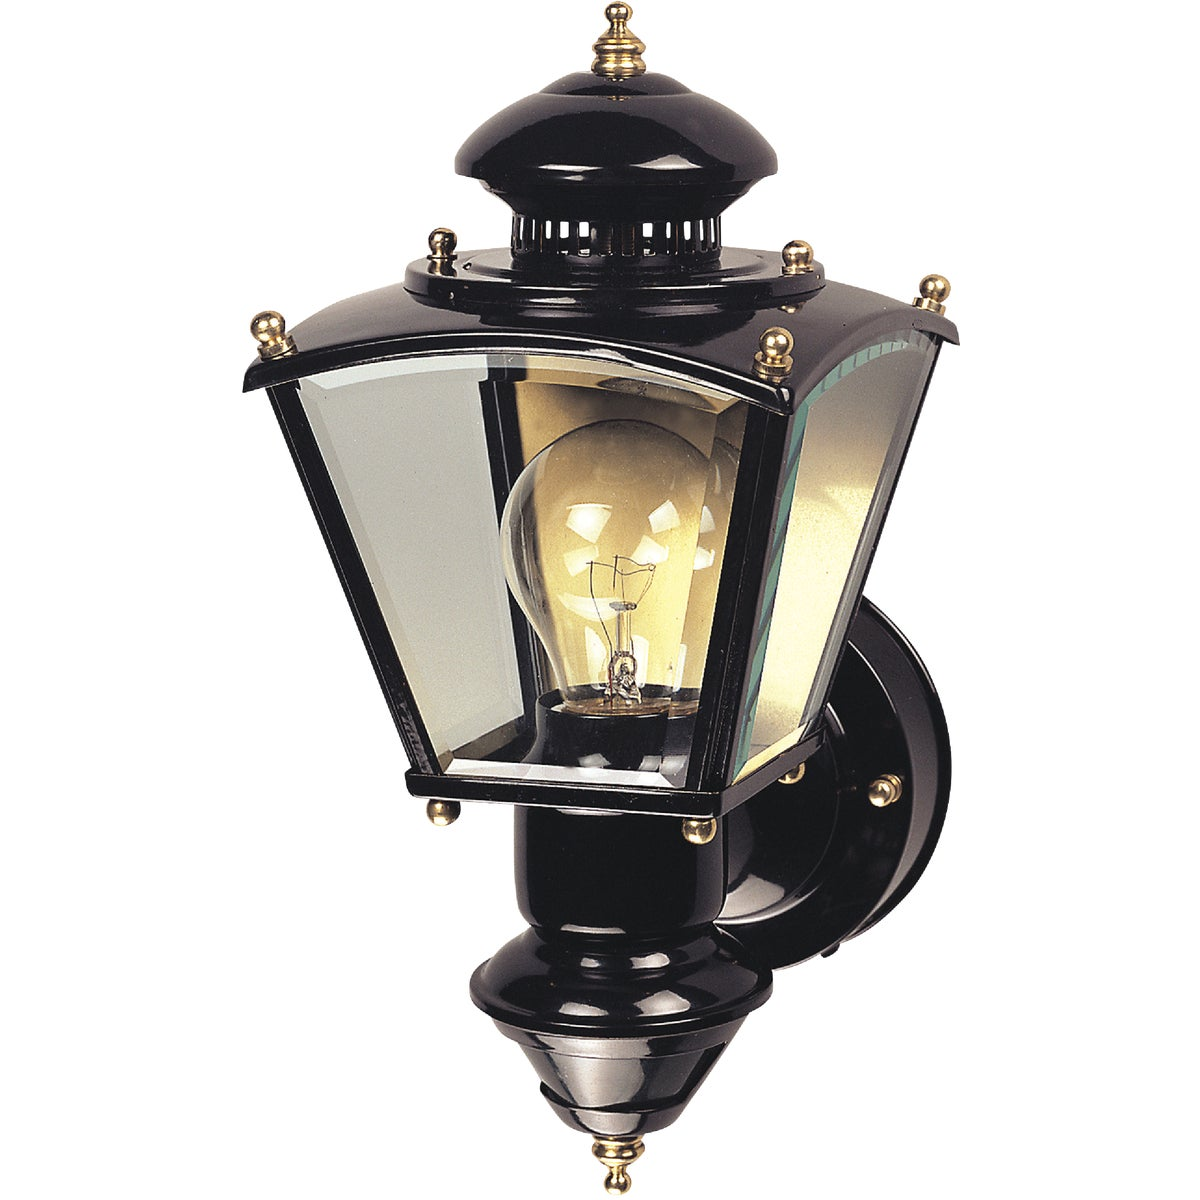 BLACK COACH MOTION LIGHT - SL-4150-BK-B by Heathco Llc